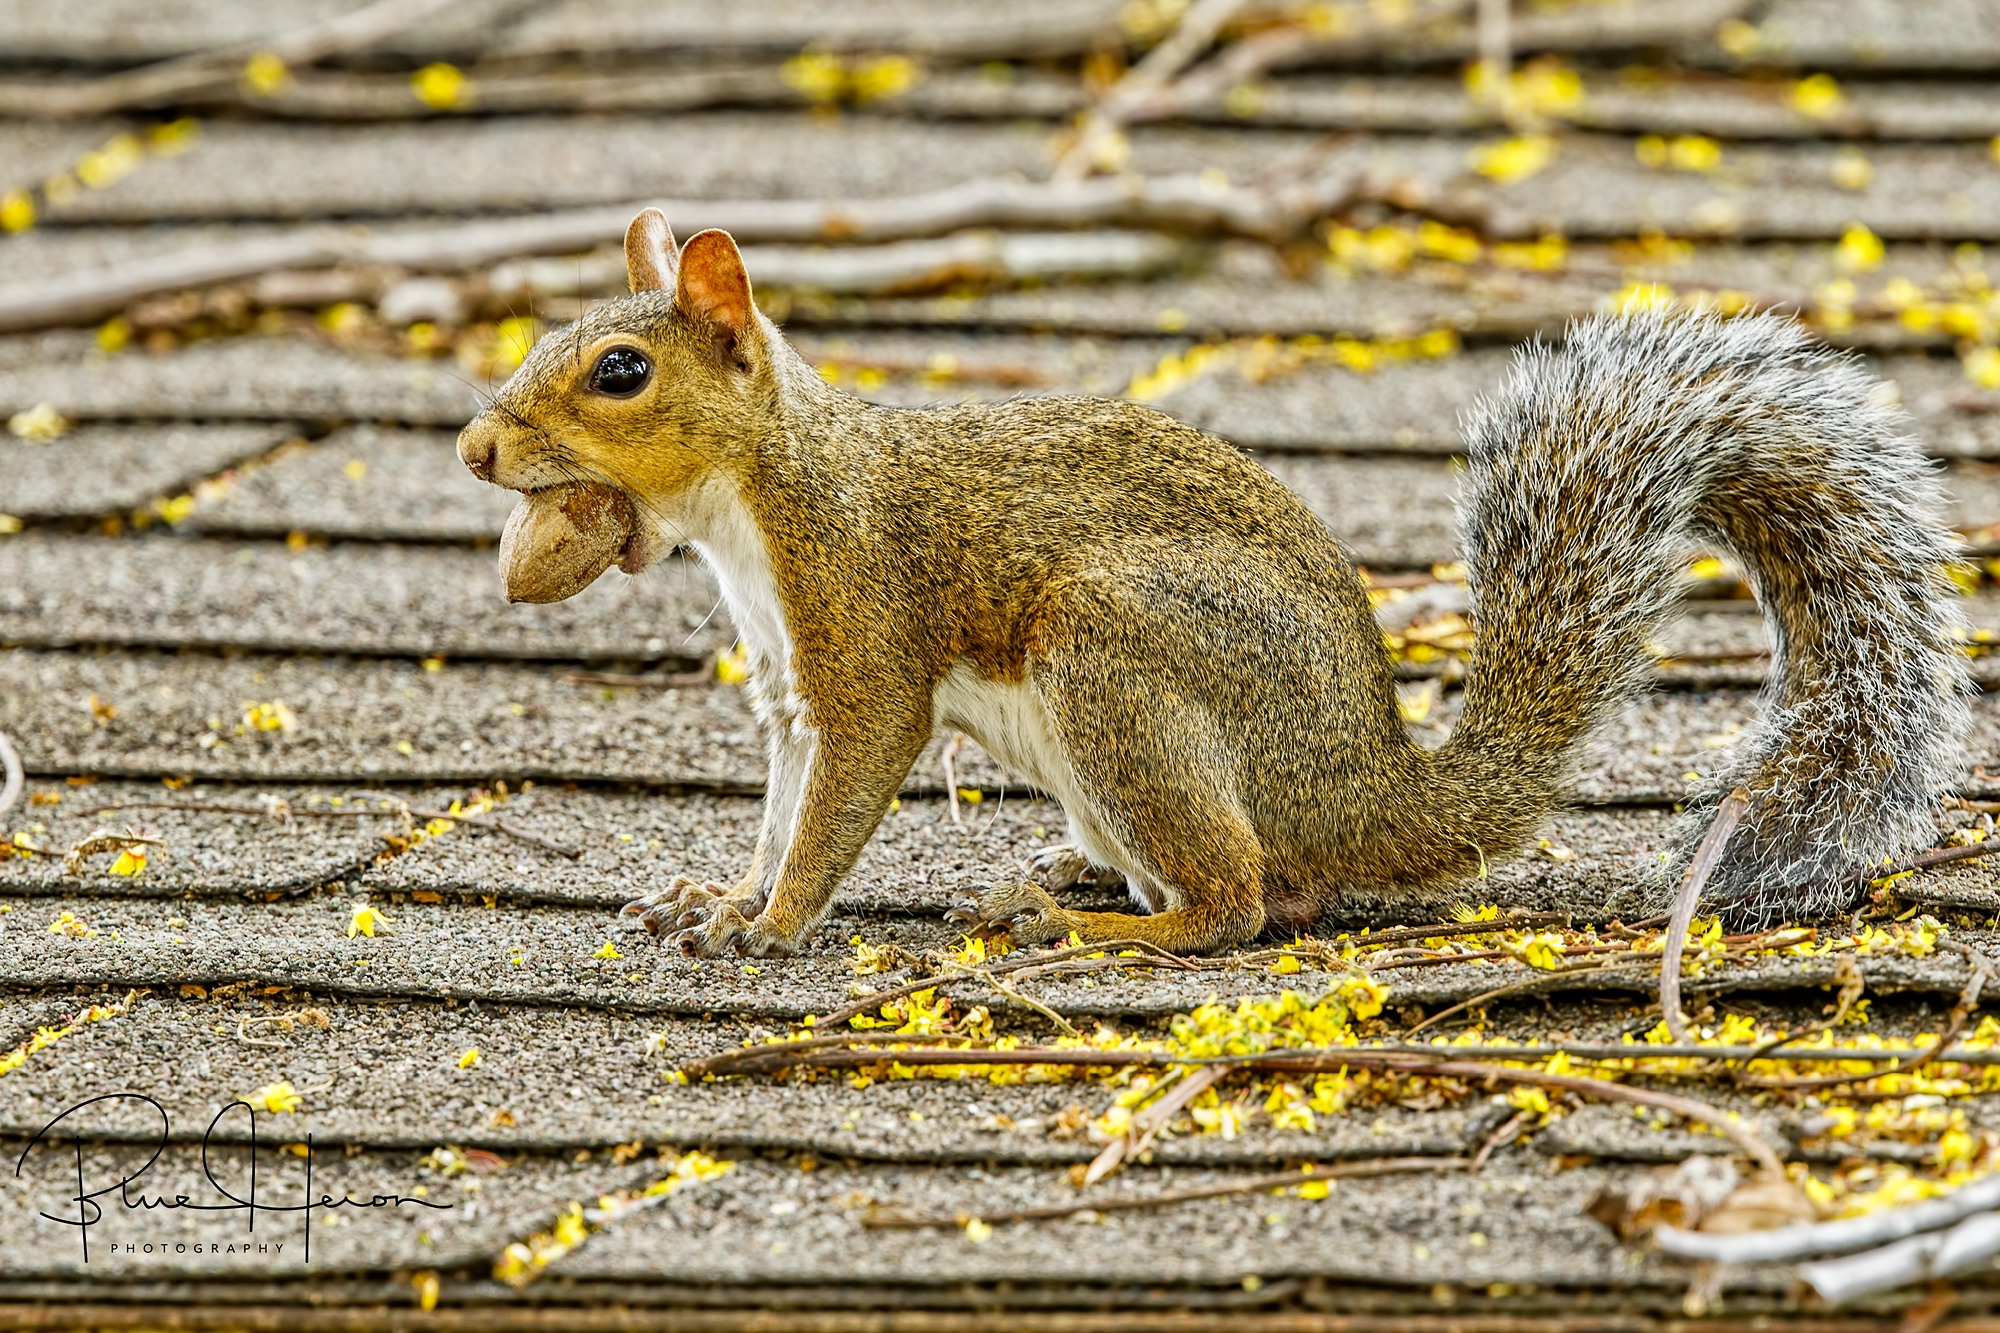 Some of my readers think I am nuts or squirrely lately...wonder why?